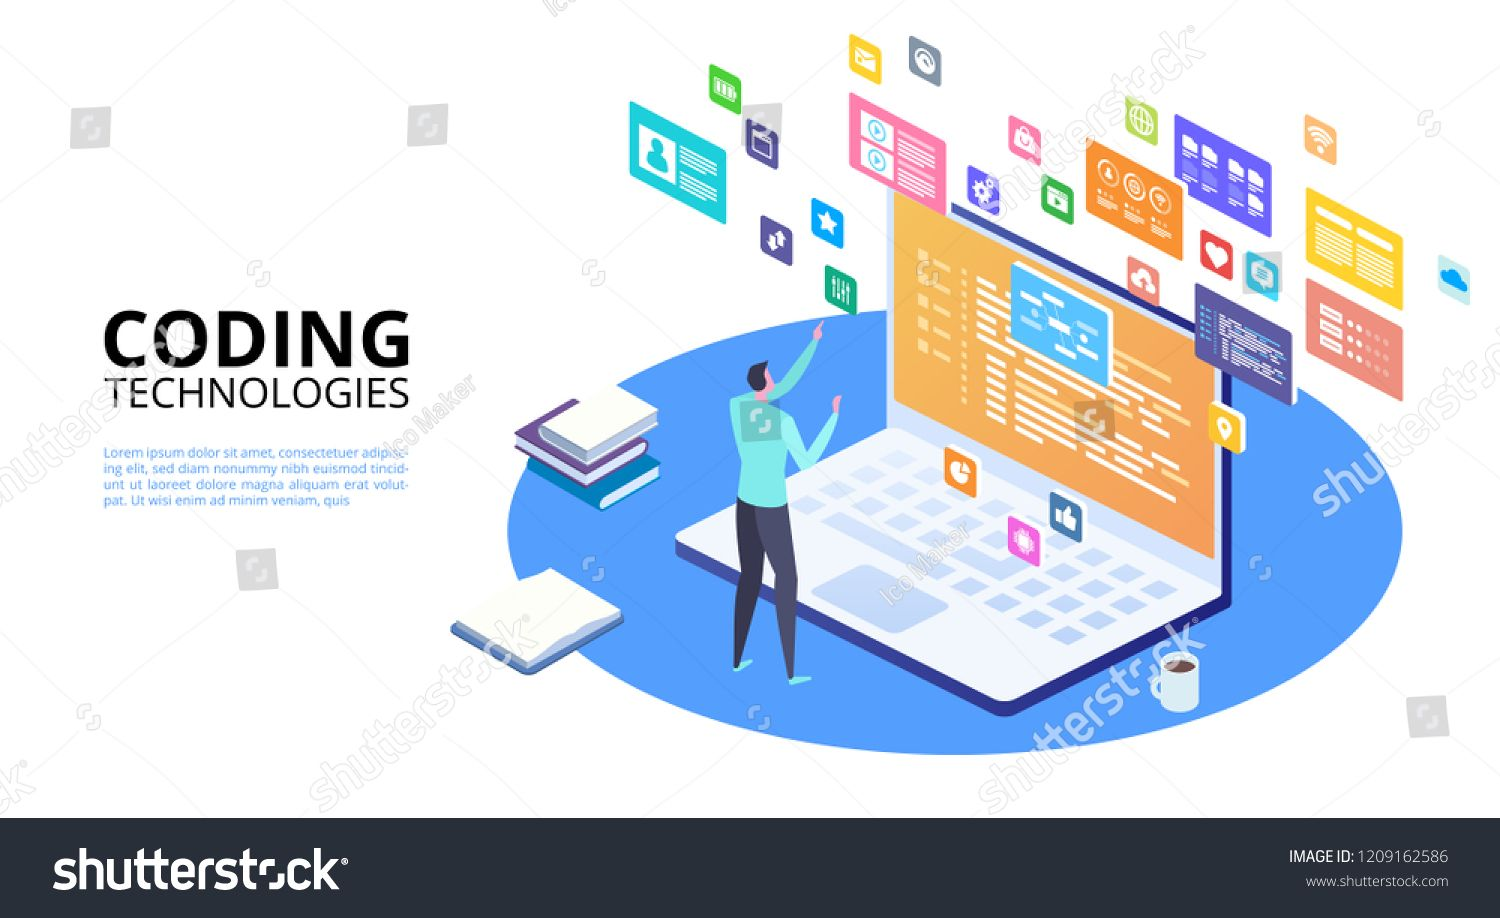 Developing Programming And Coding Technologies Concept Isometric